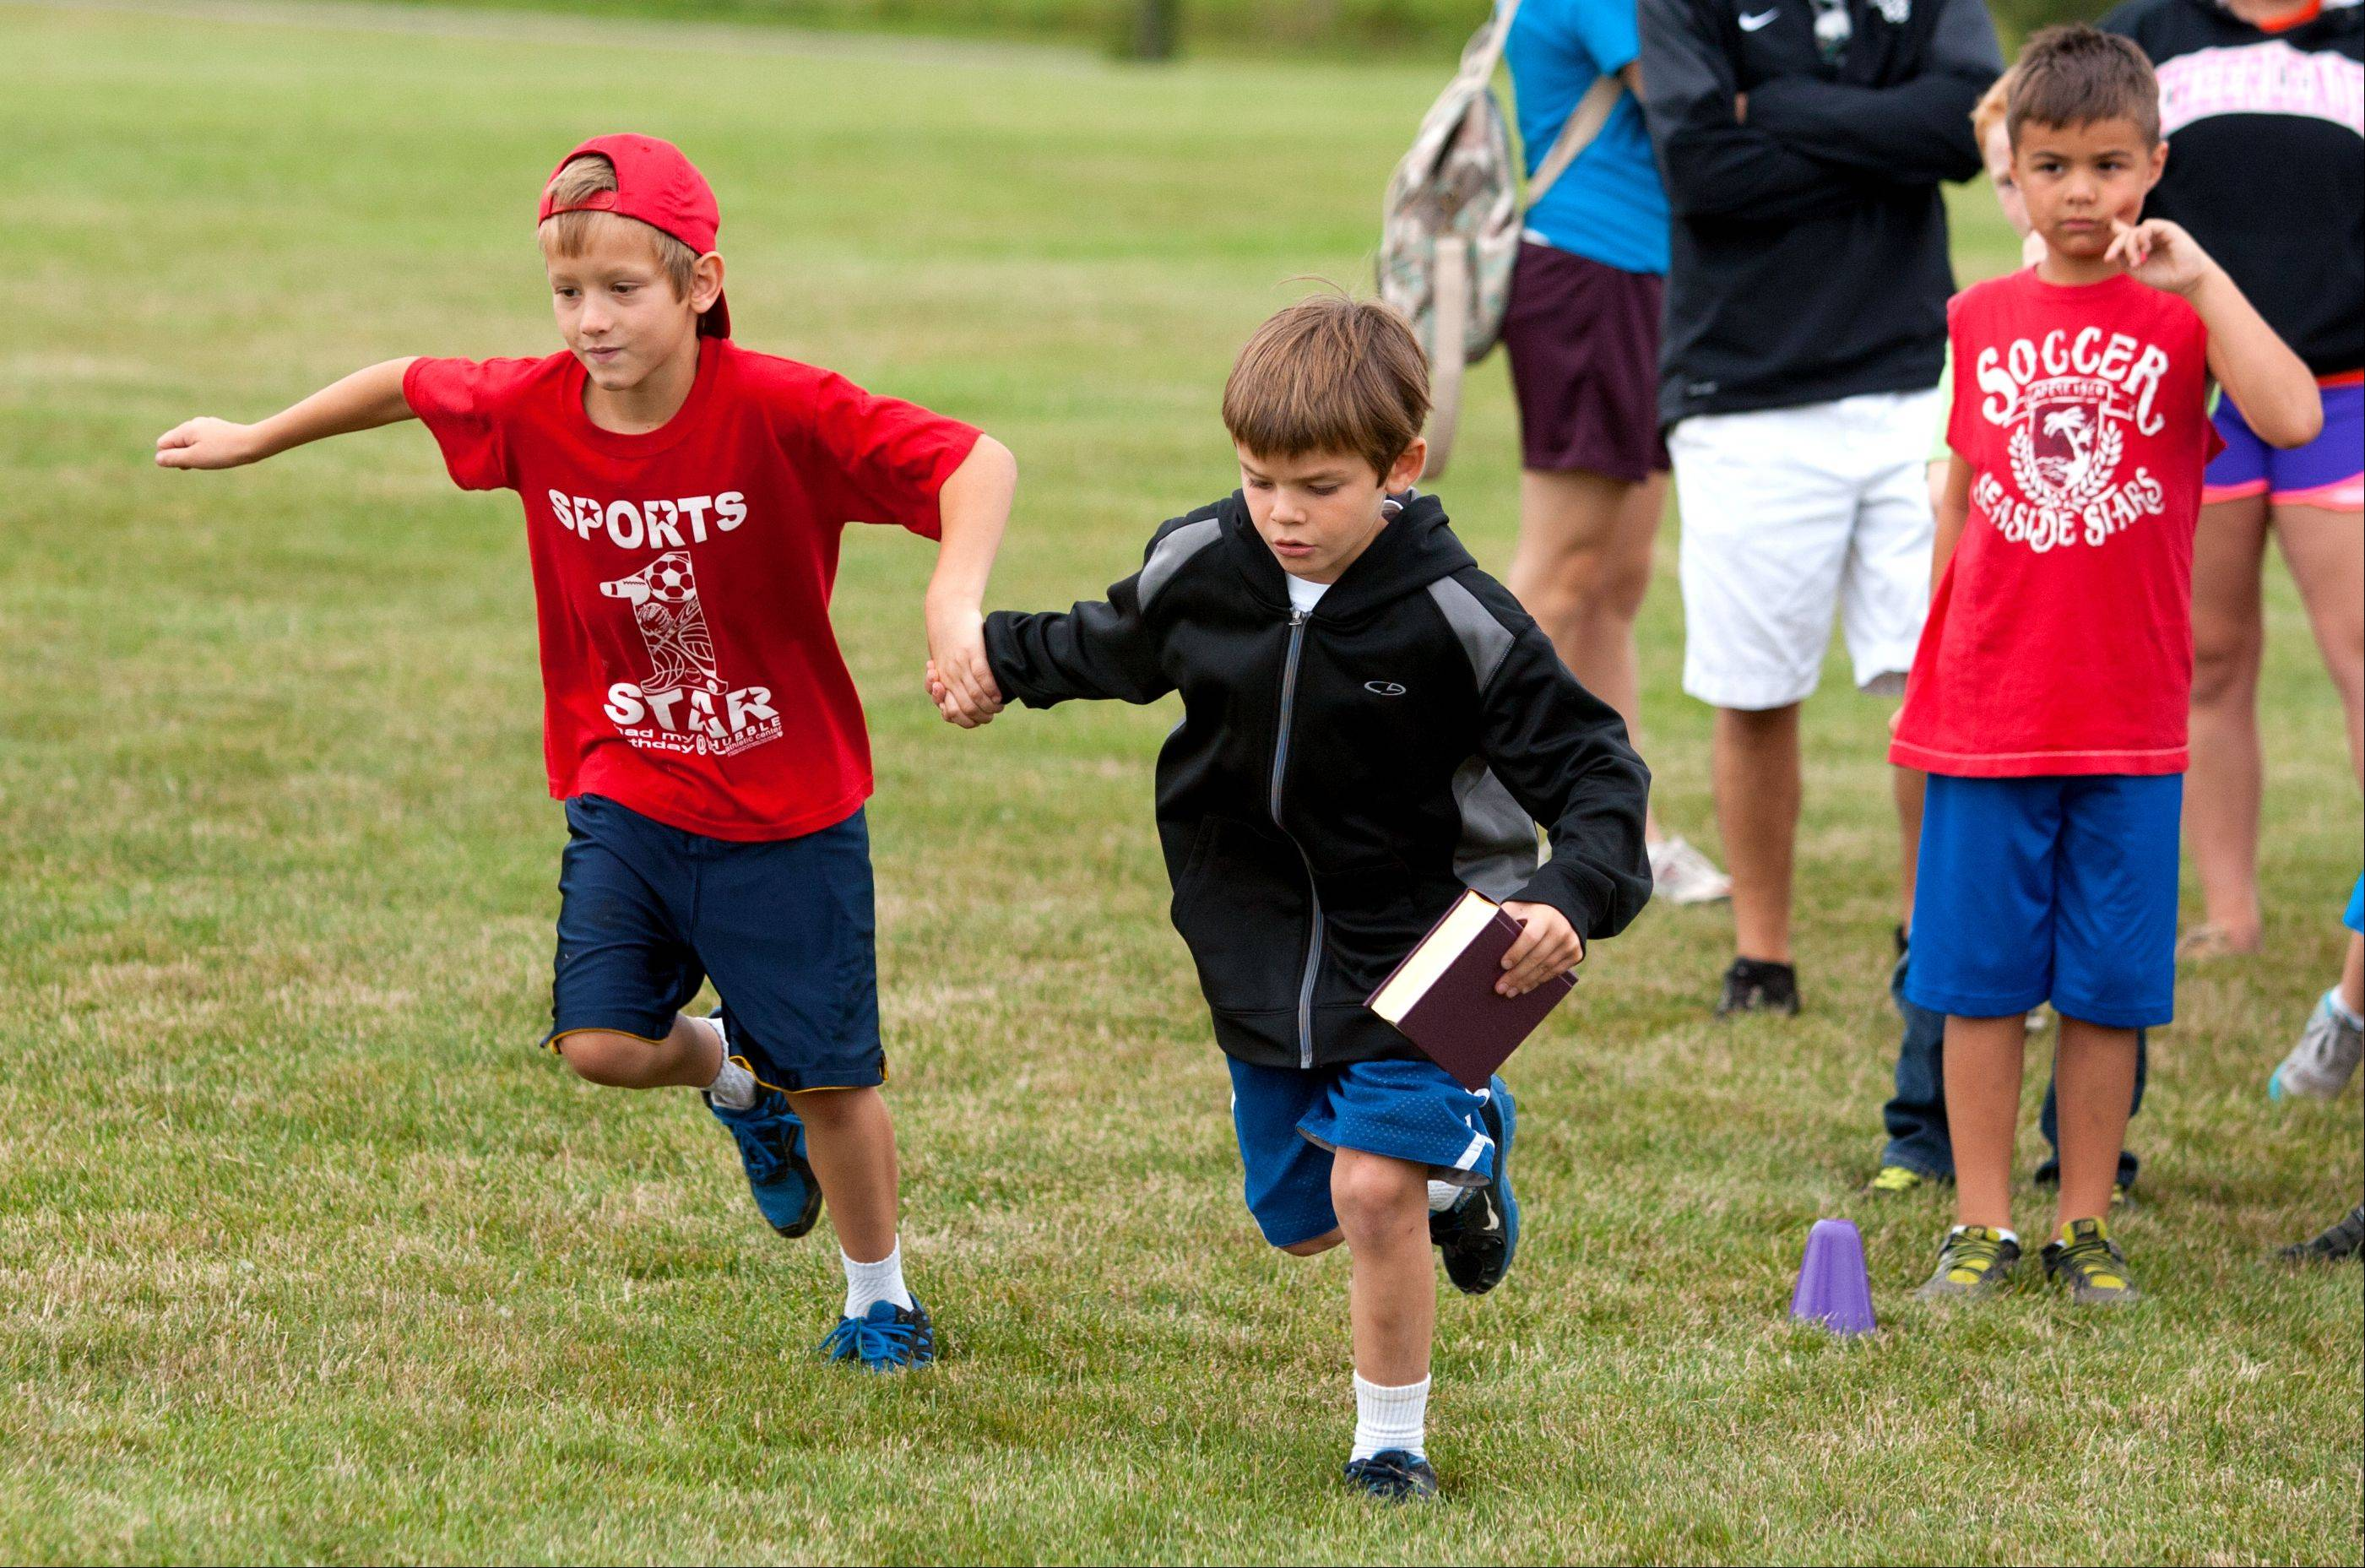 Noah Collingbourne, left, and Robert Barnhisel, both of Winfield Park District, run in the precious cargo partner relay race during the fifth annual WAYS Salute to the Olympics, held at Carol Stream's Red Hawk Park.